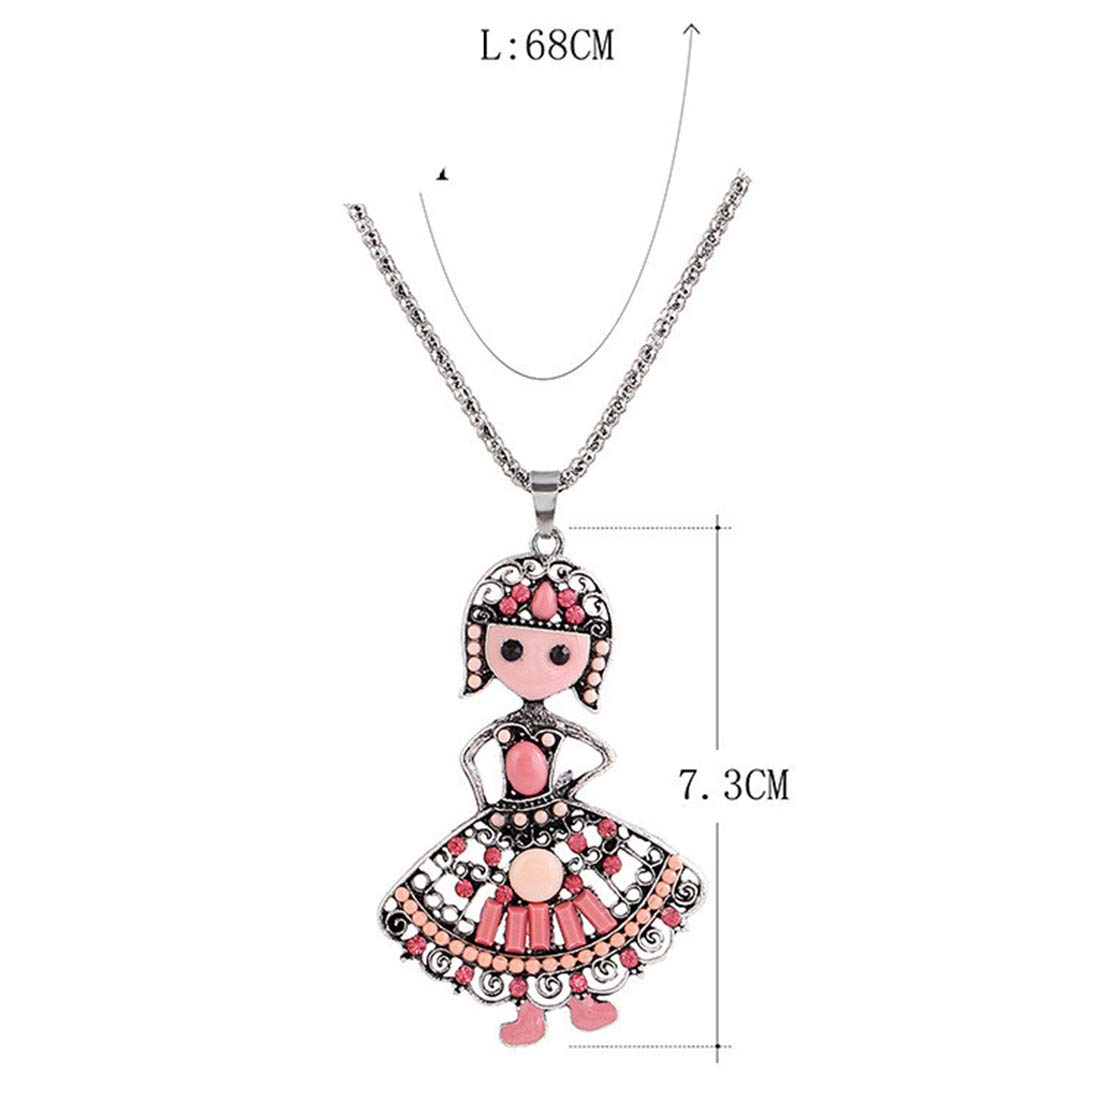 Bohemian Hat Girl Princess Necklace Vintage Ethnic Jewelry Birthday Gift for Girlfriend